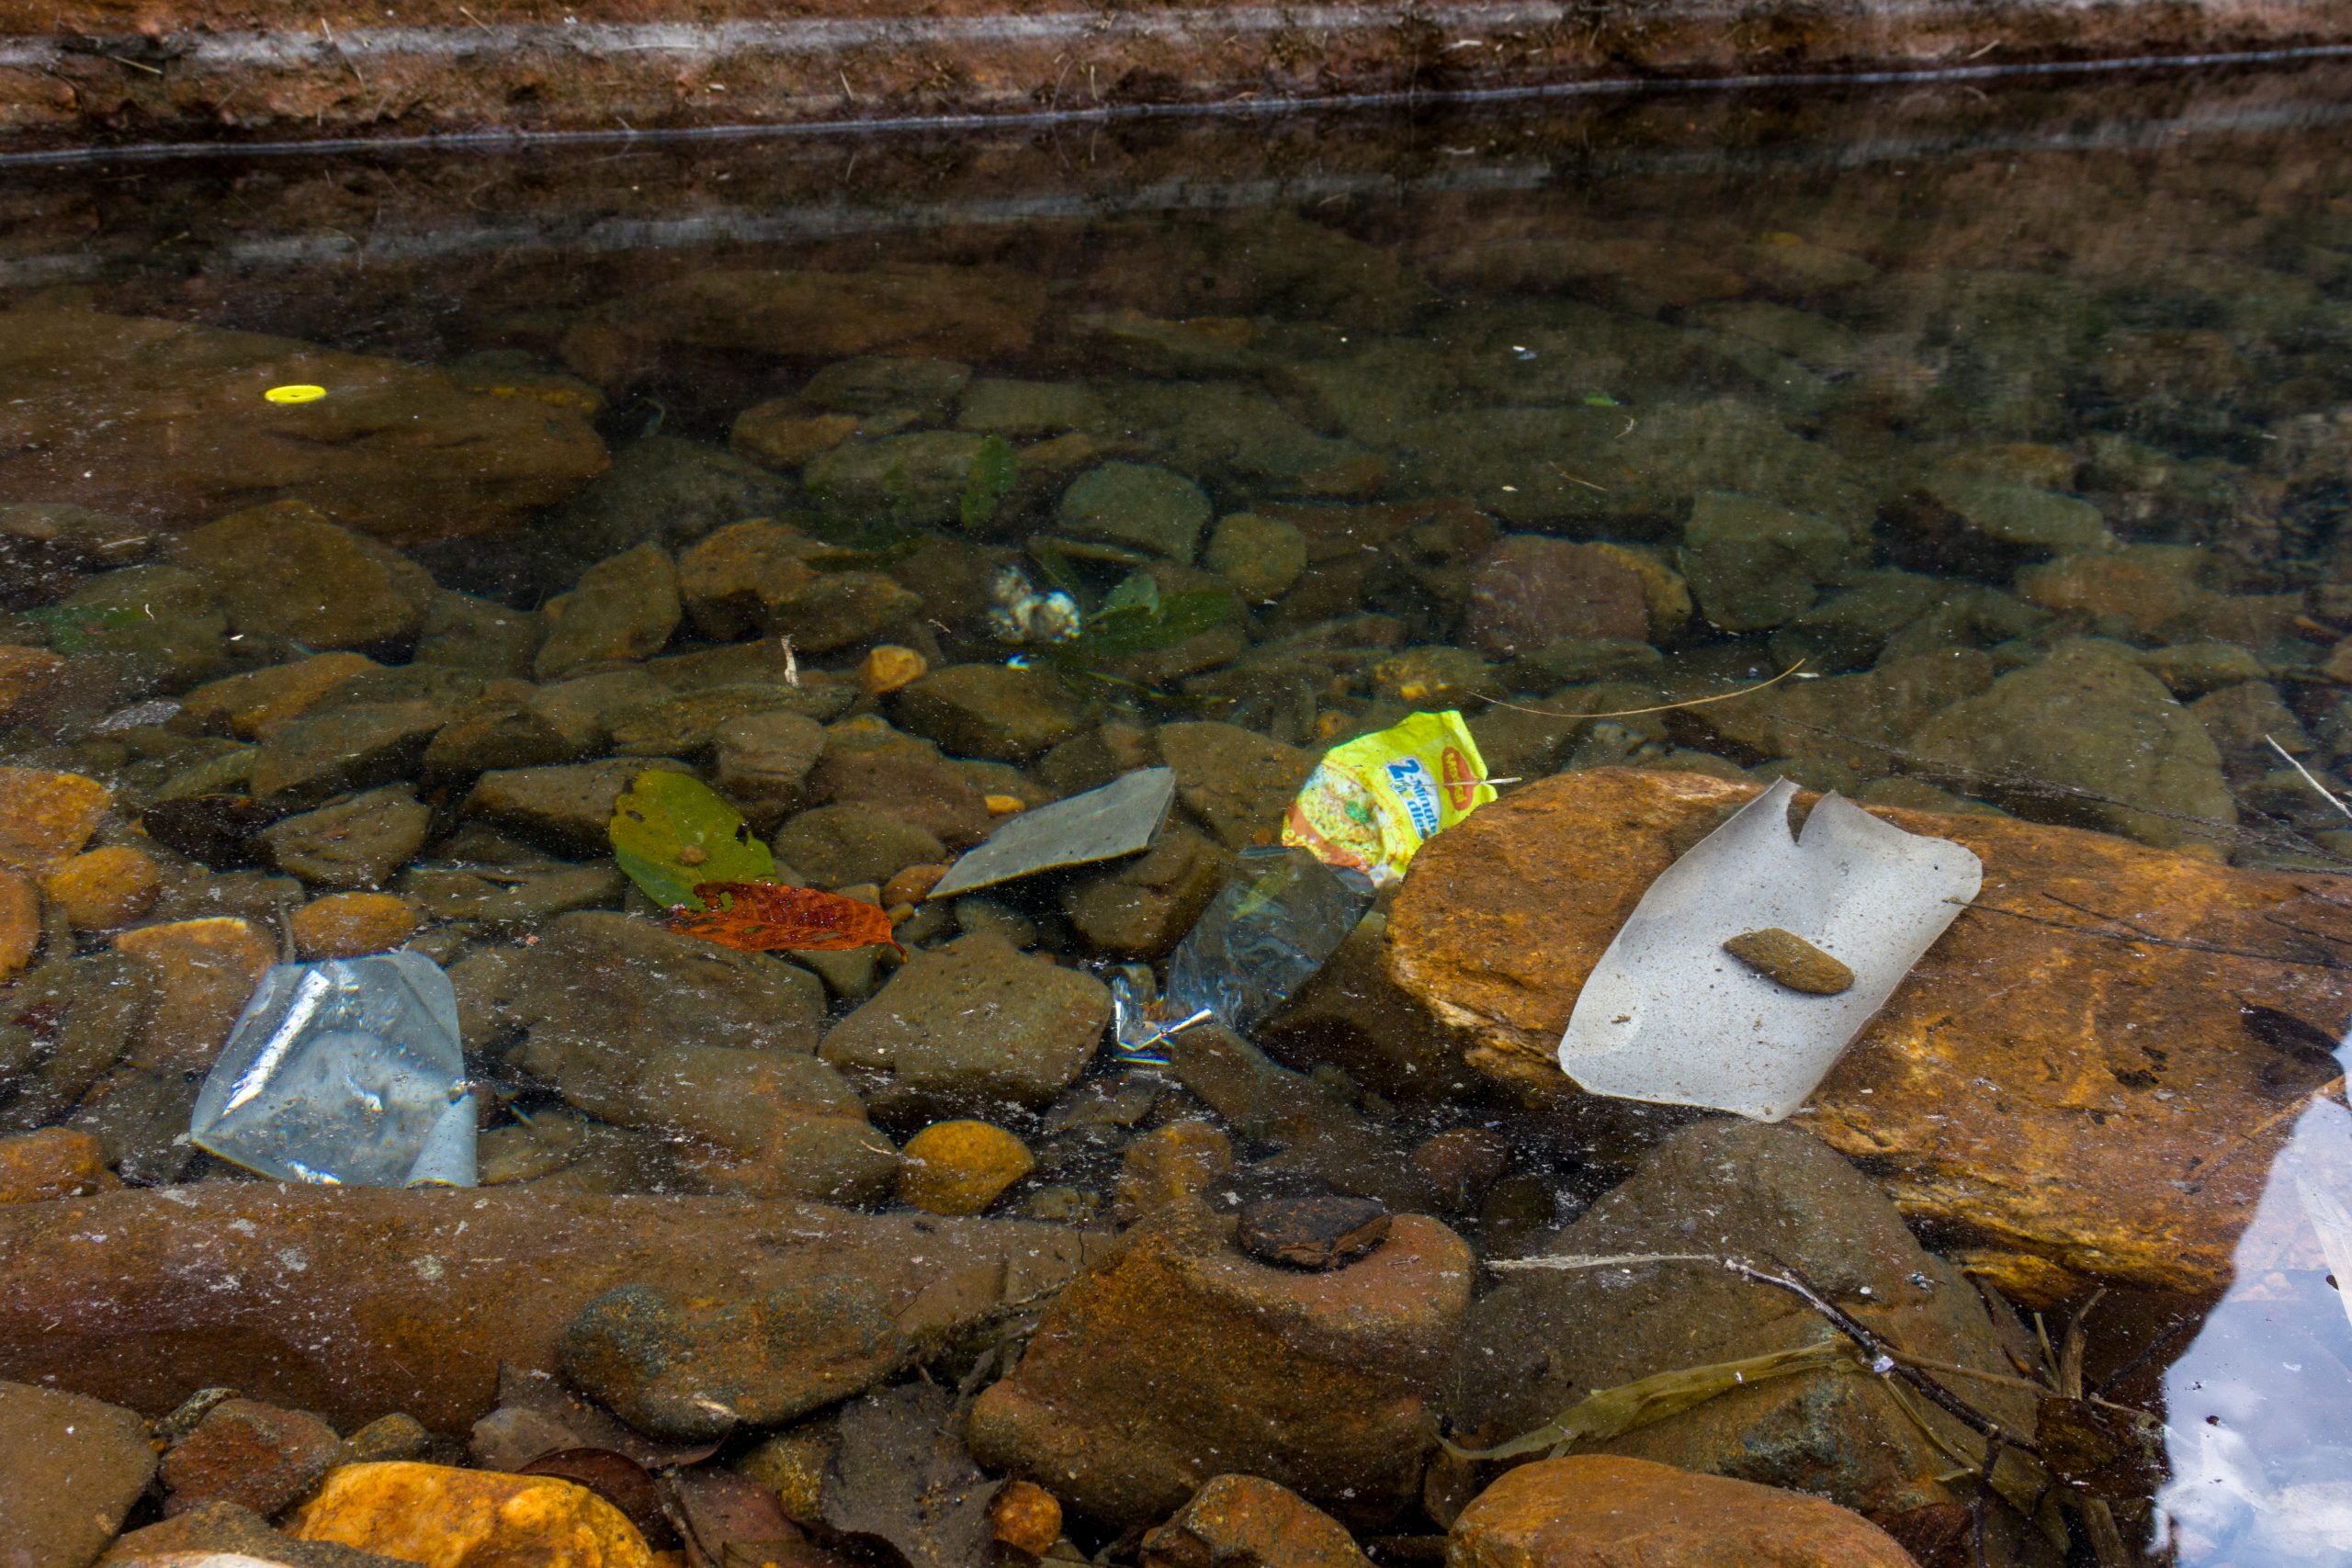 Plastic waste in a water resource